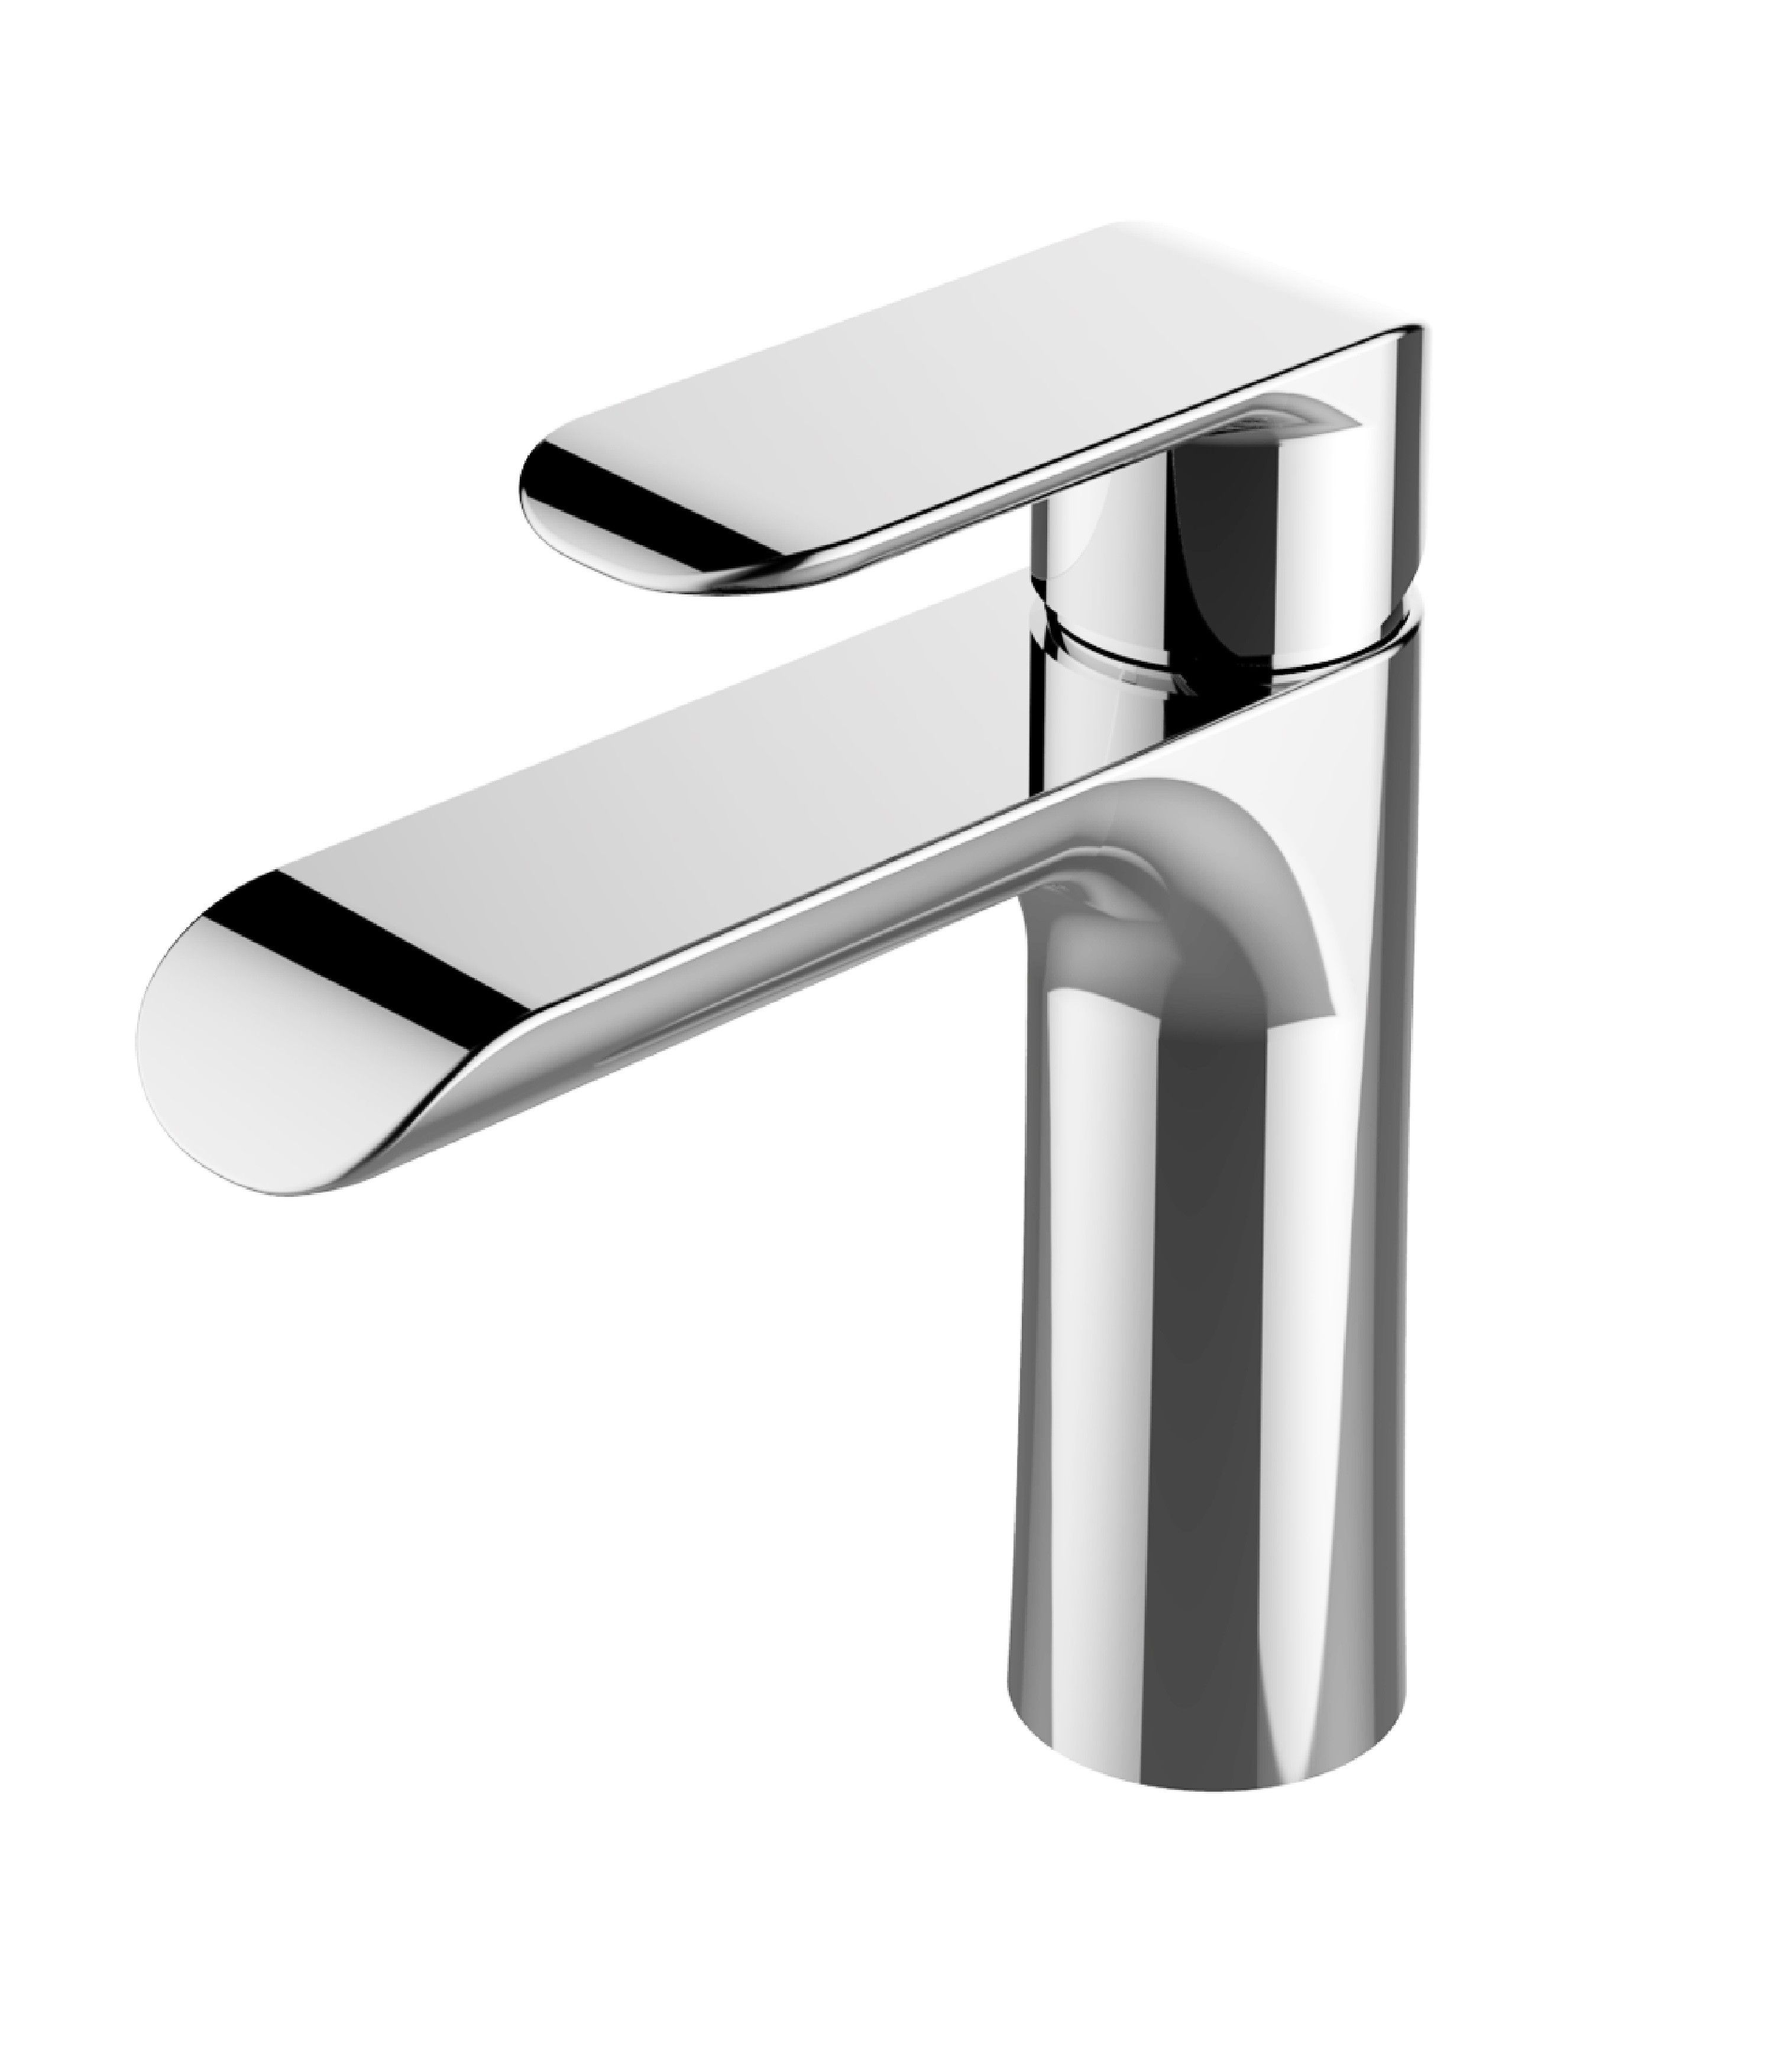 Bathroom Handles Spring Wdg16431c Single Lever Handle Bathroom Faucet With